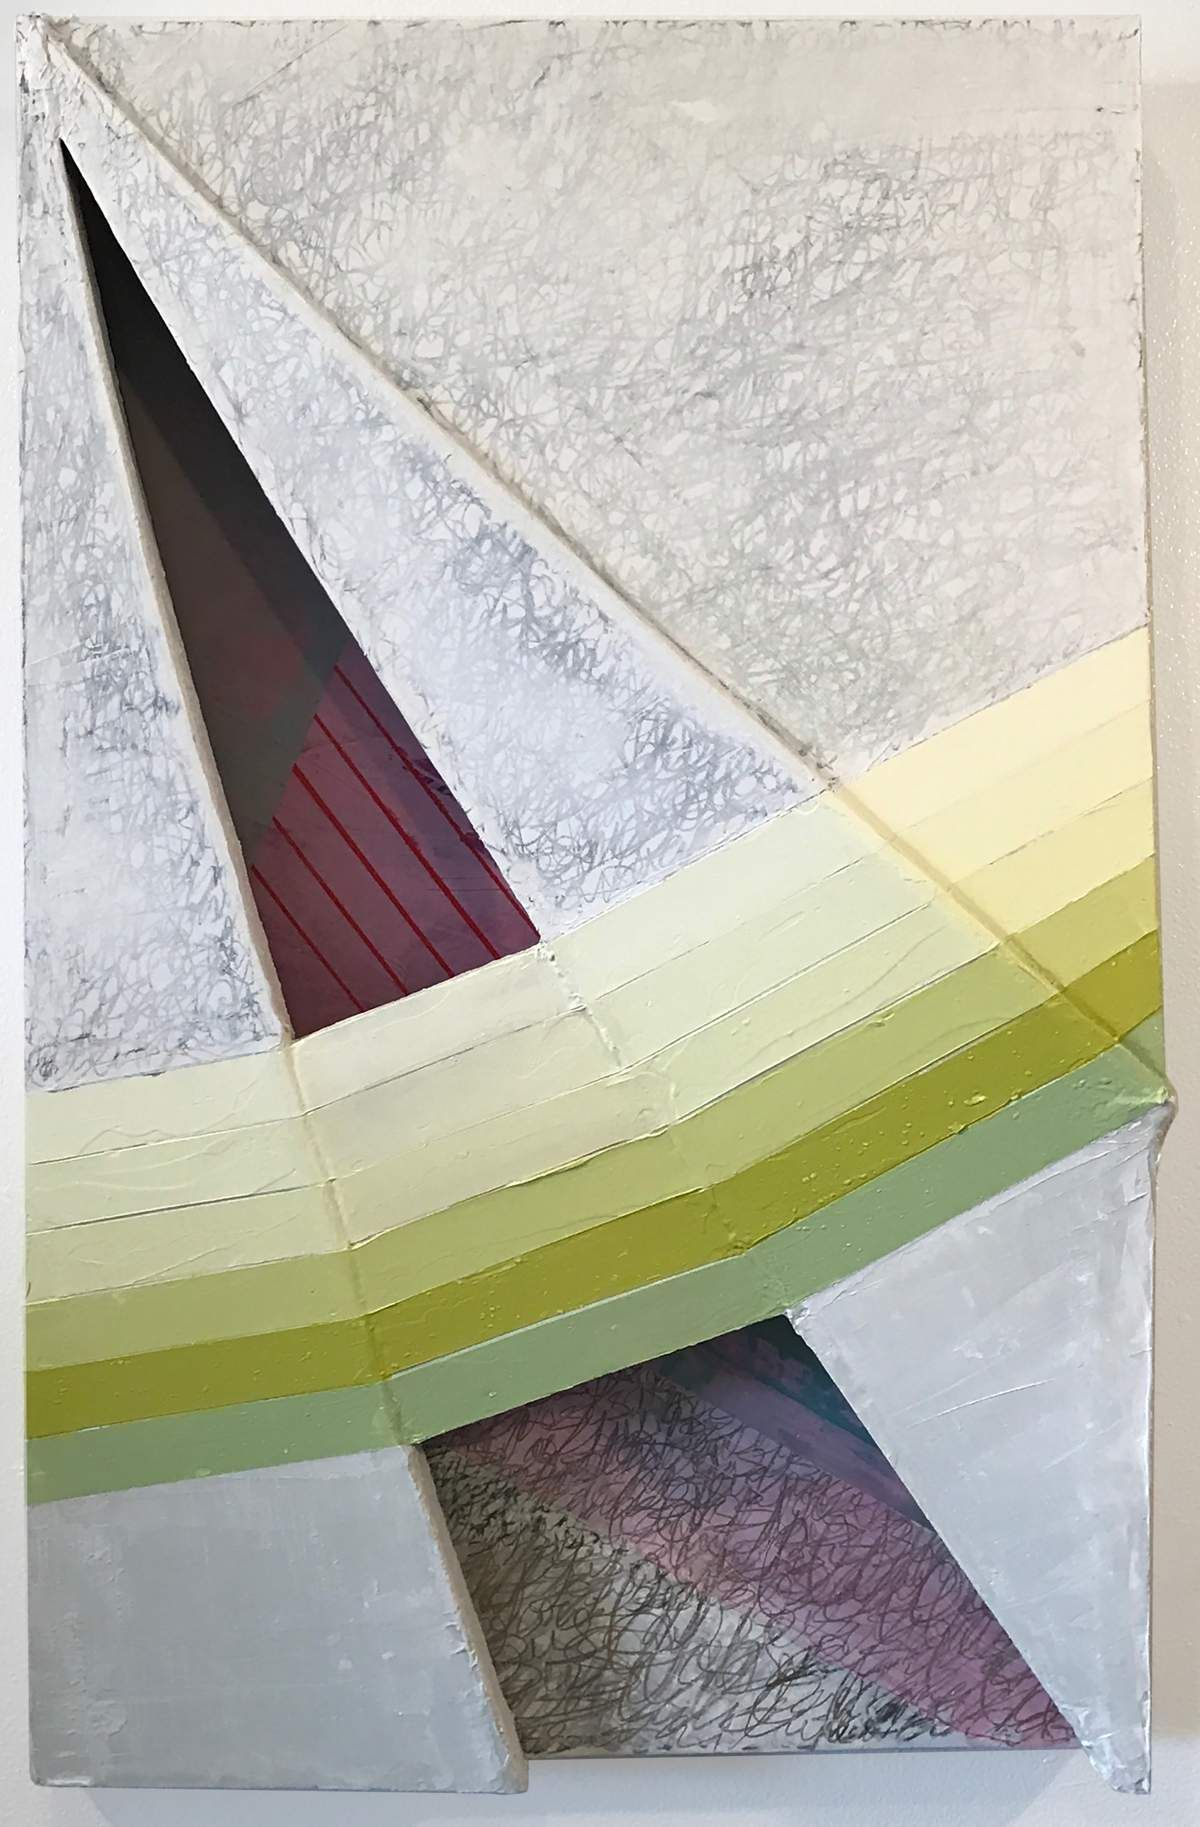 Abstraction, calligraphy and wintry scenes fill Third Friday